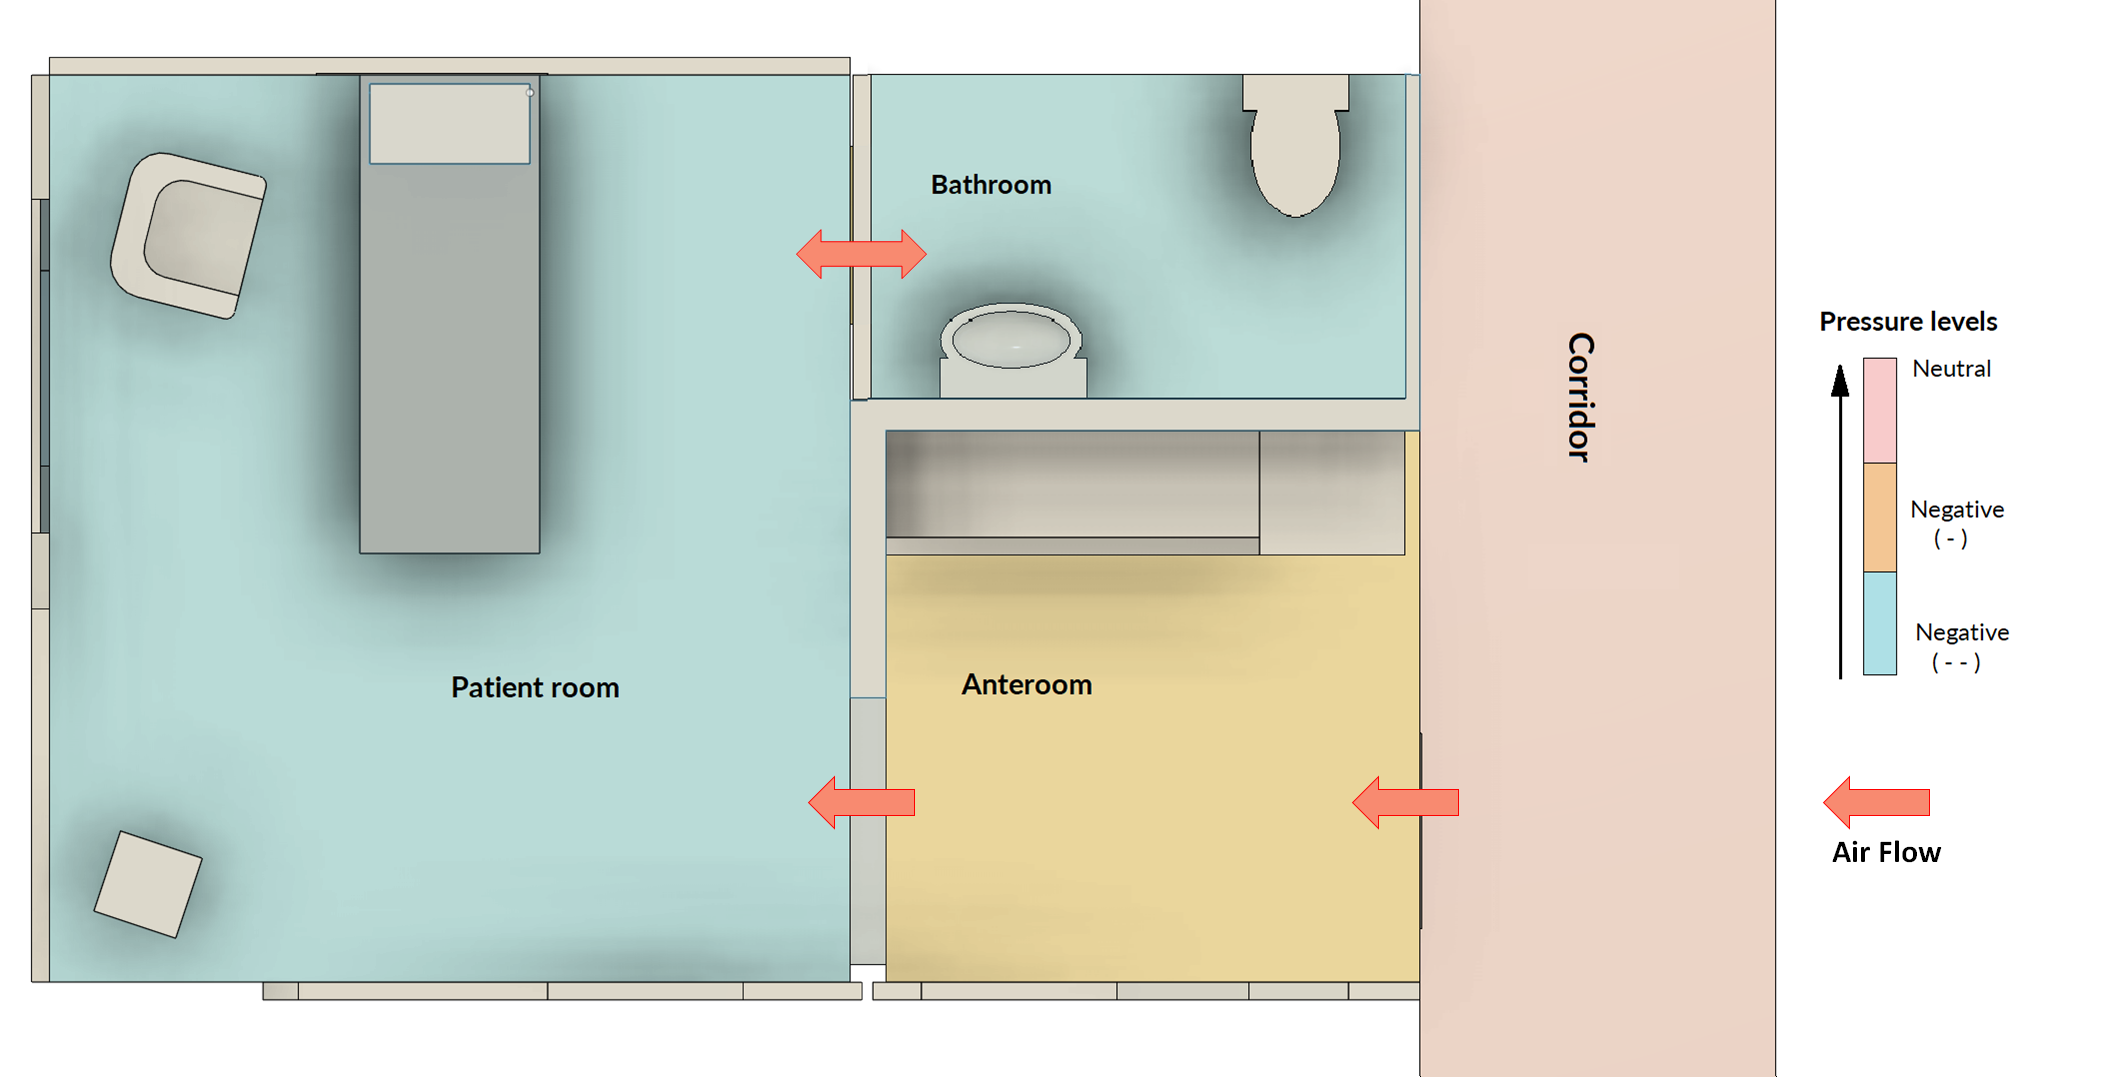 Negative Pressure and Airflow in Isolation Room